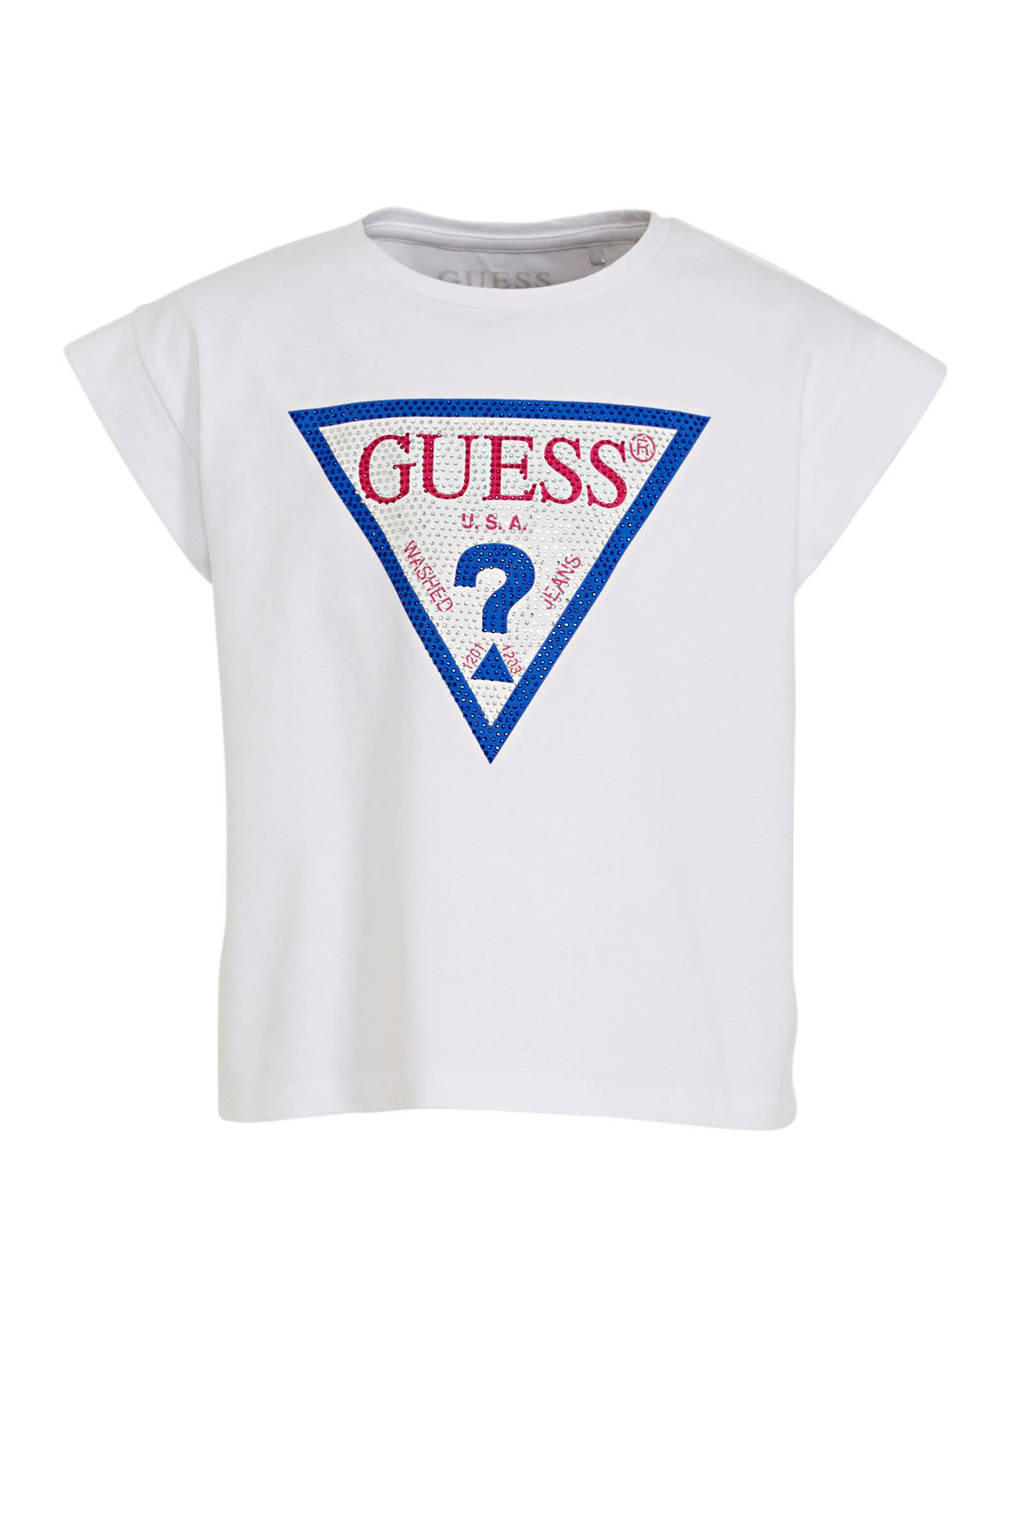 GUESS T-shirt met logo wit, Wit